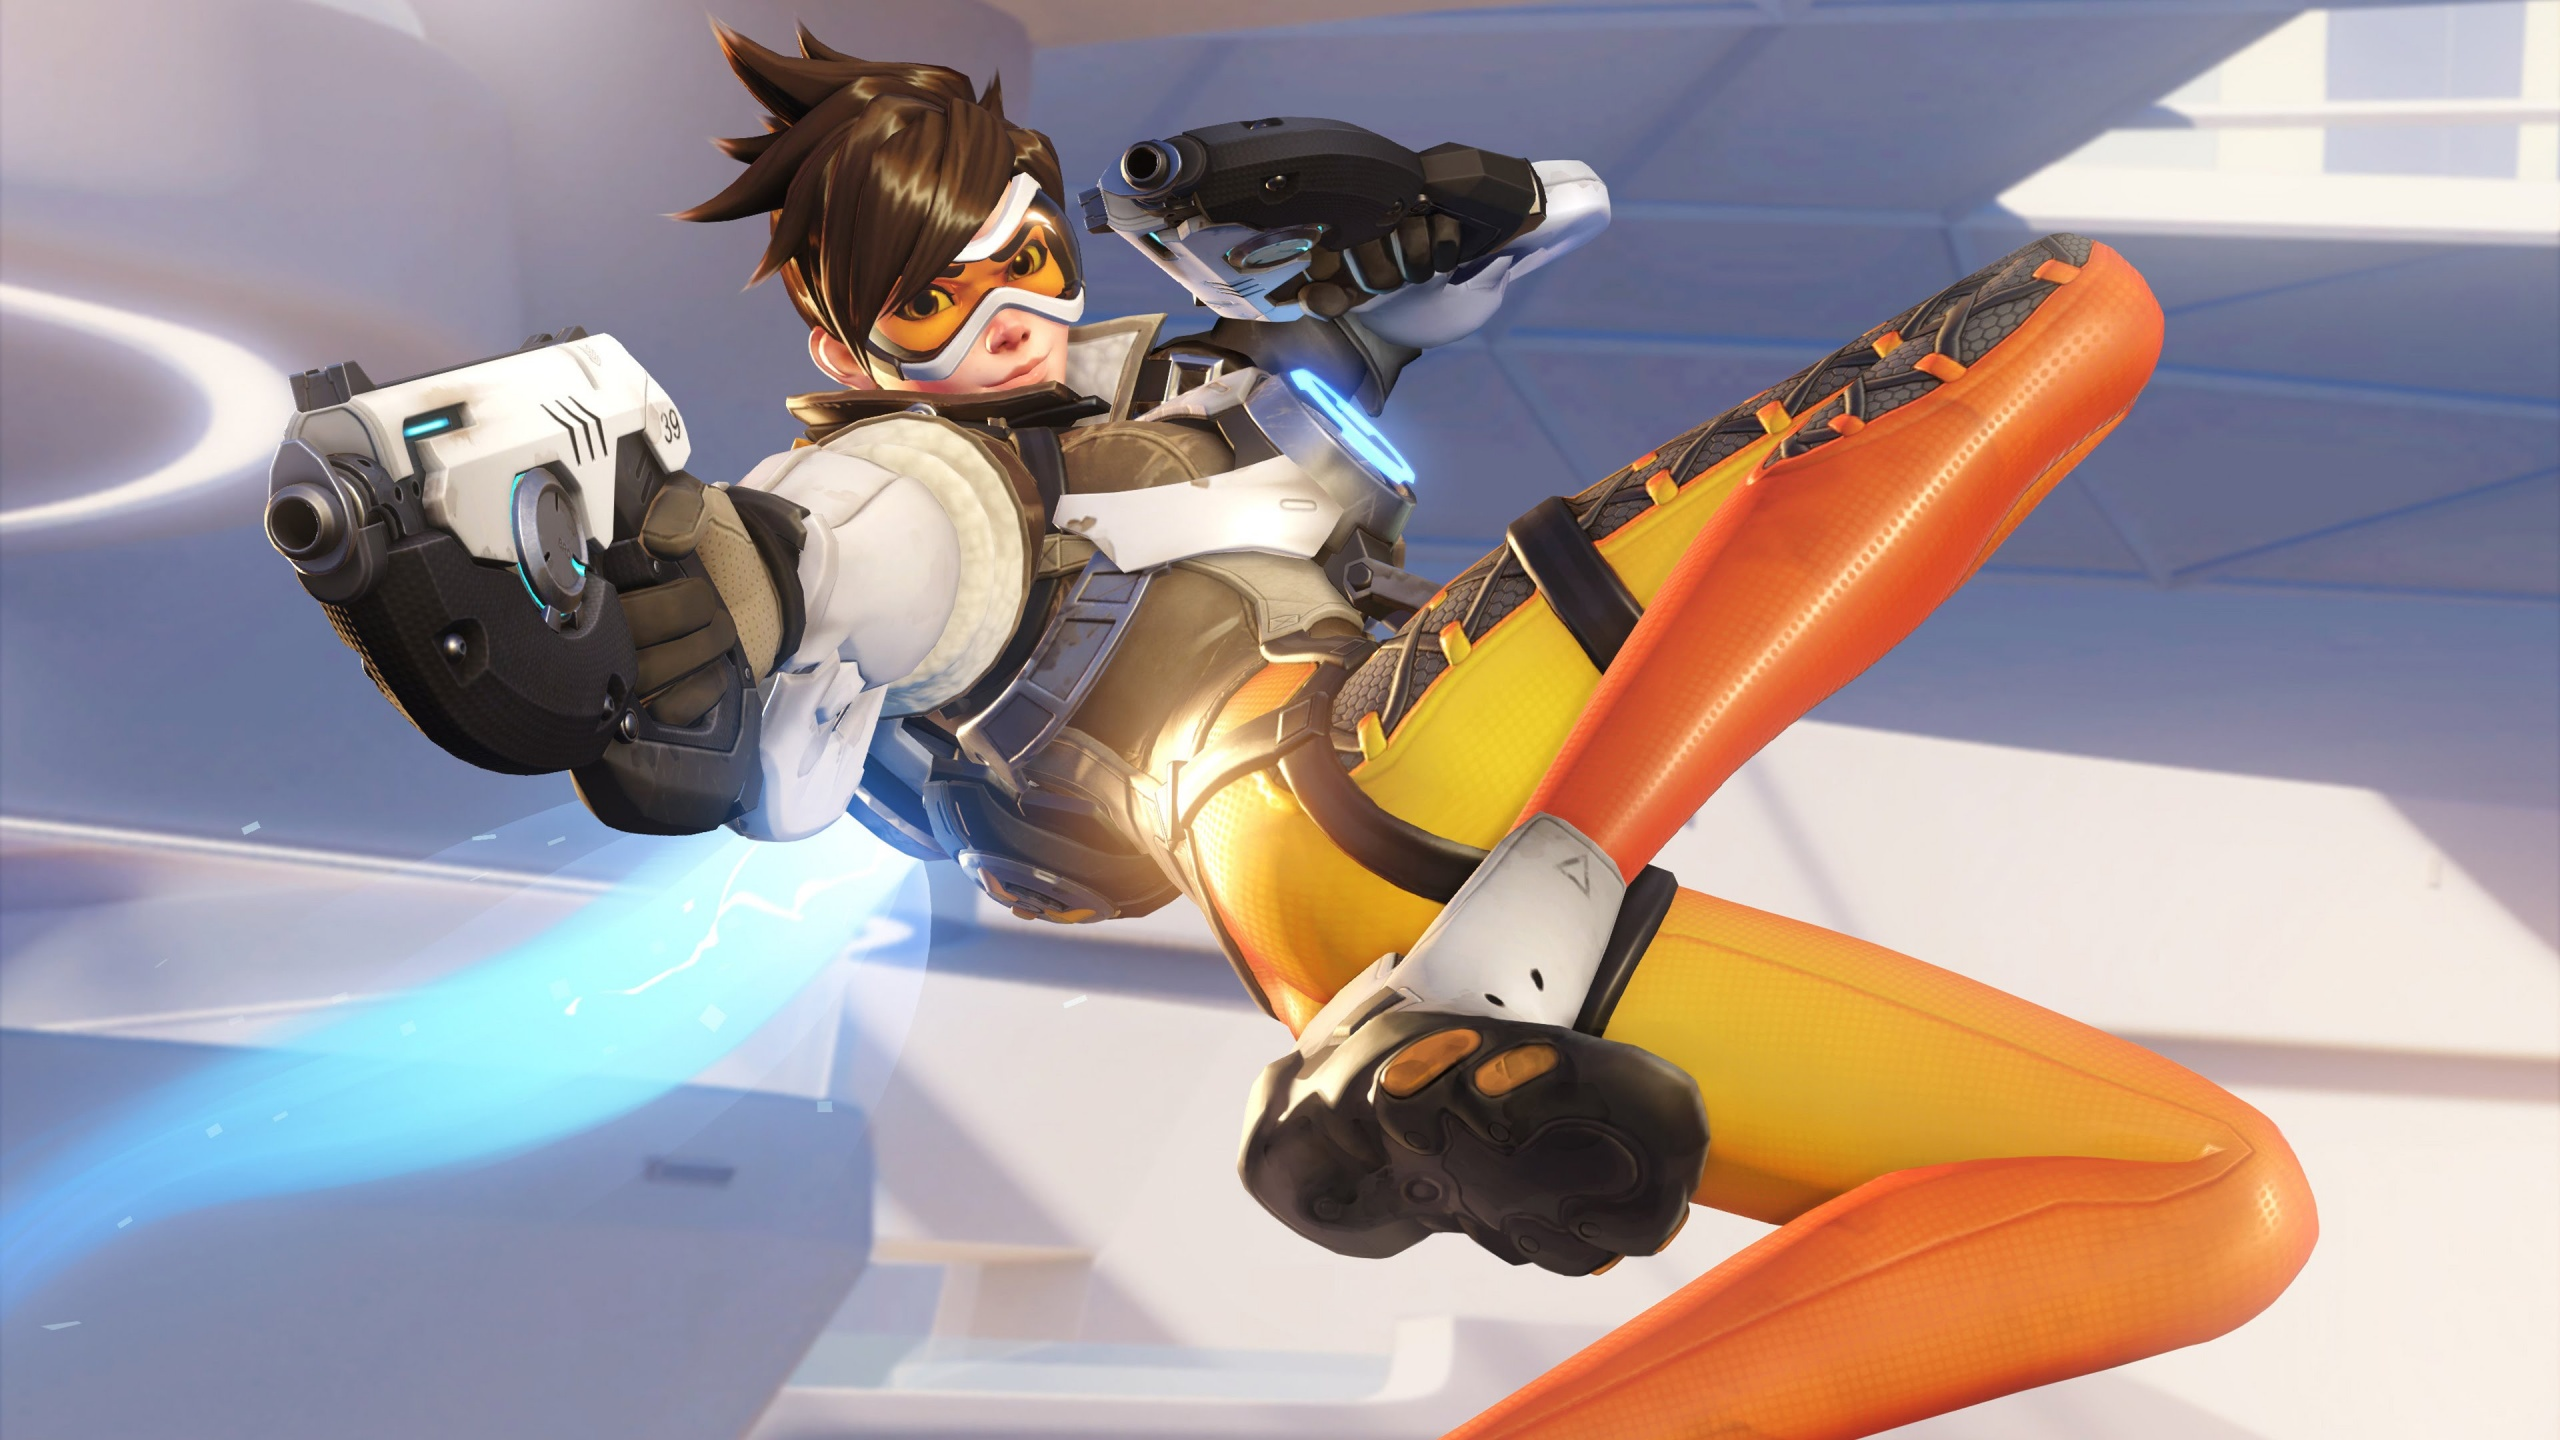 Overwatch Tracer 4K Wallpapers HD Wallpapers 2560x1440